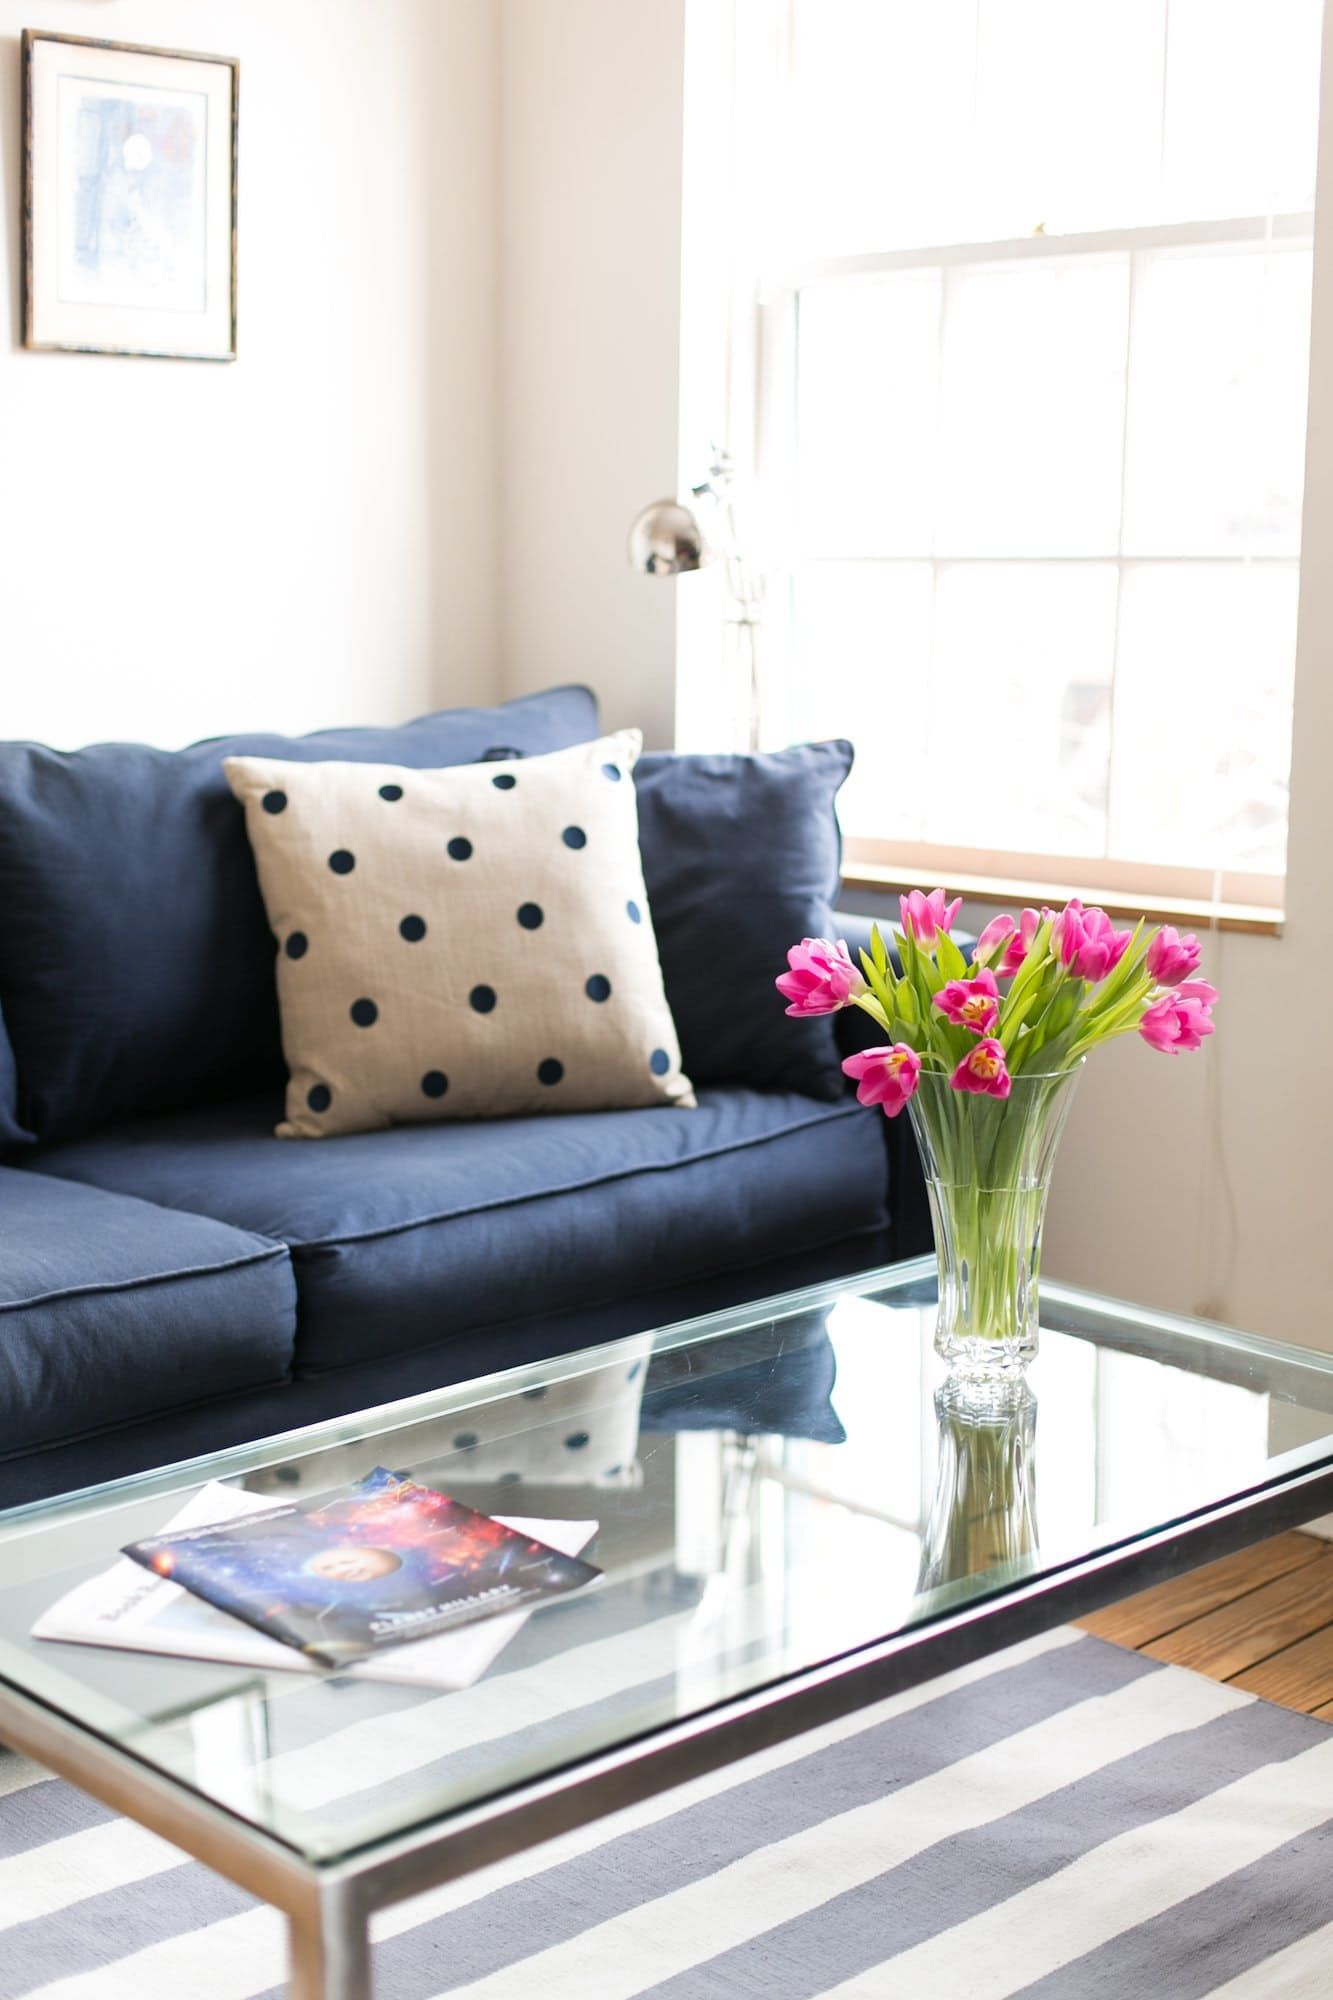 Cheap, Yet Chic: 8 Living Room Ideas For Little To No Money U2014 From Good Looking